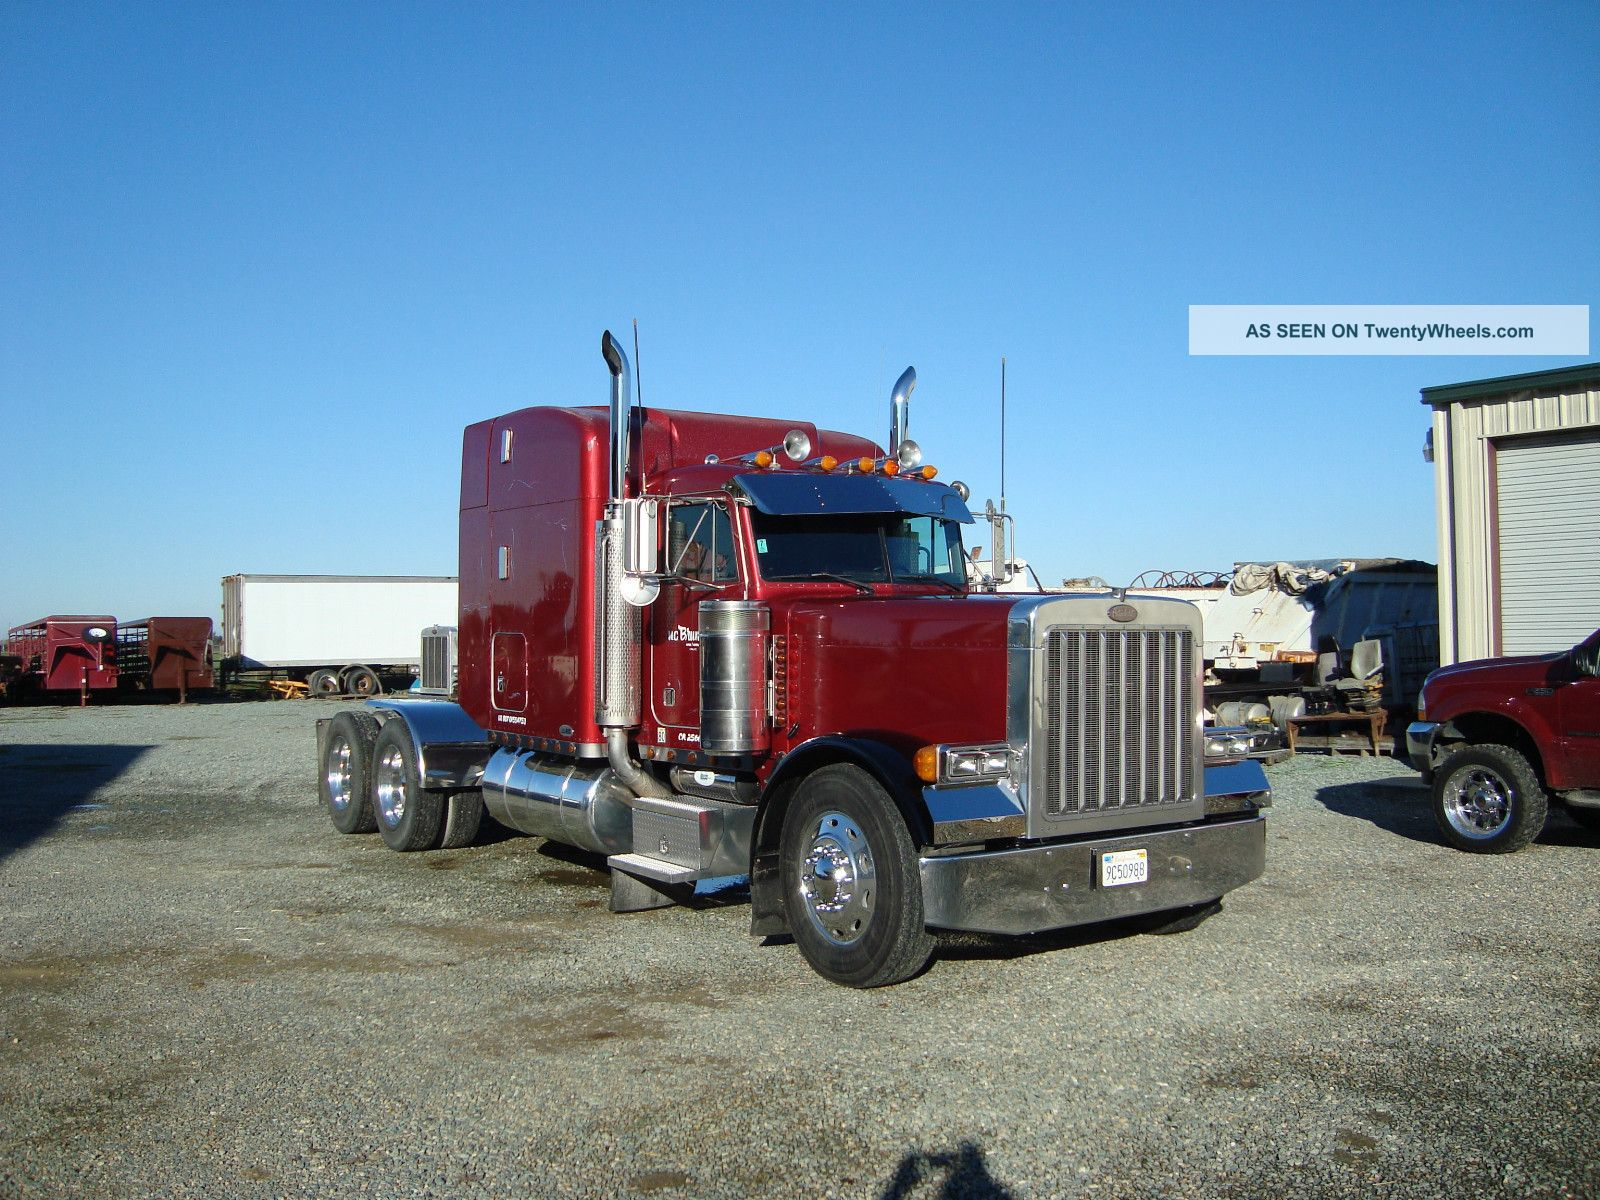 Watch likewise 243 1995 coleman rio grande also 6d steering mfwd also Guinness Mobile Bar Trailer Deployed Nearside Rear View as well Page 34421. on utility semi trailers